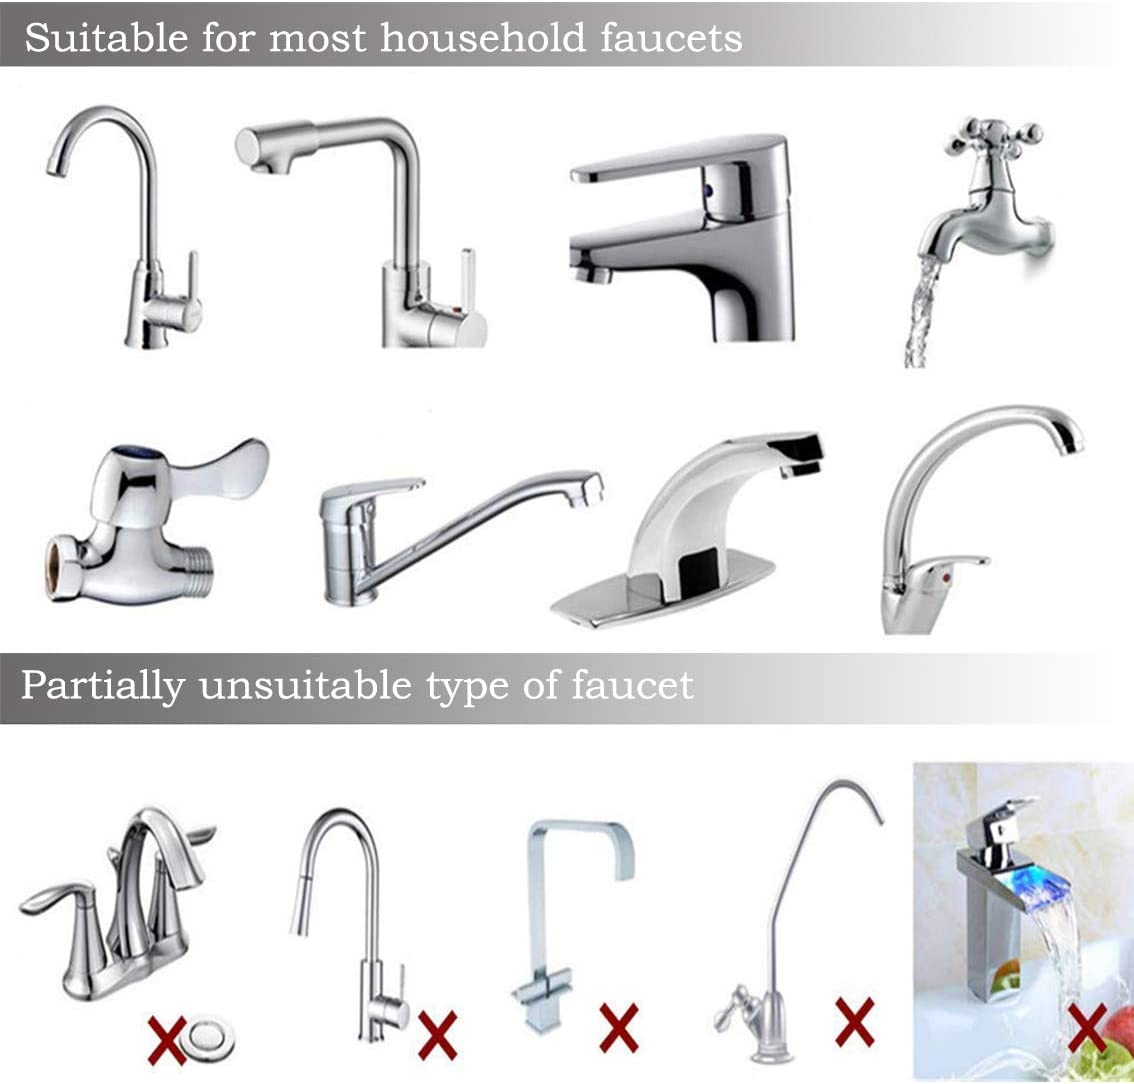 Musitelying Portable Ceramic Water Tap Filter Faucet Kitchen Cleaning Purifier Replacement Cartridge